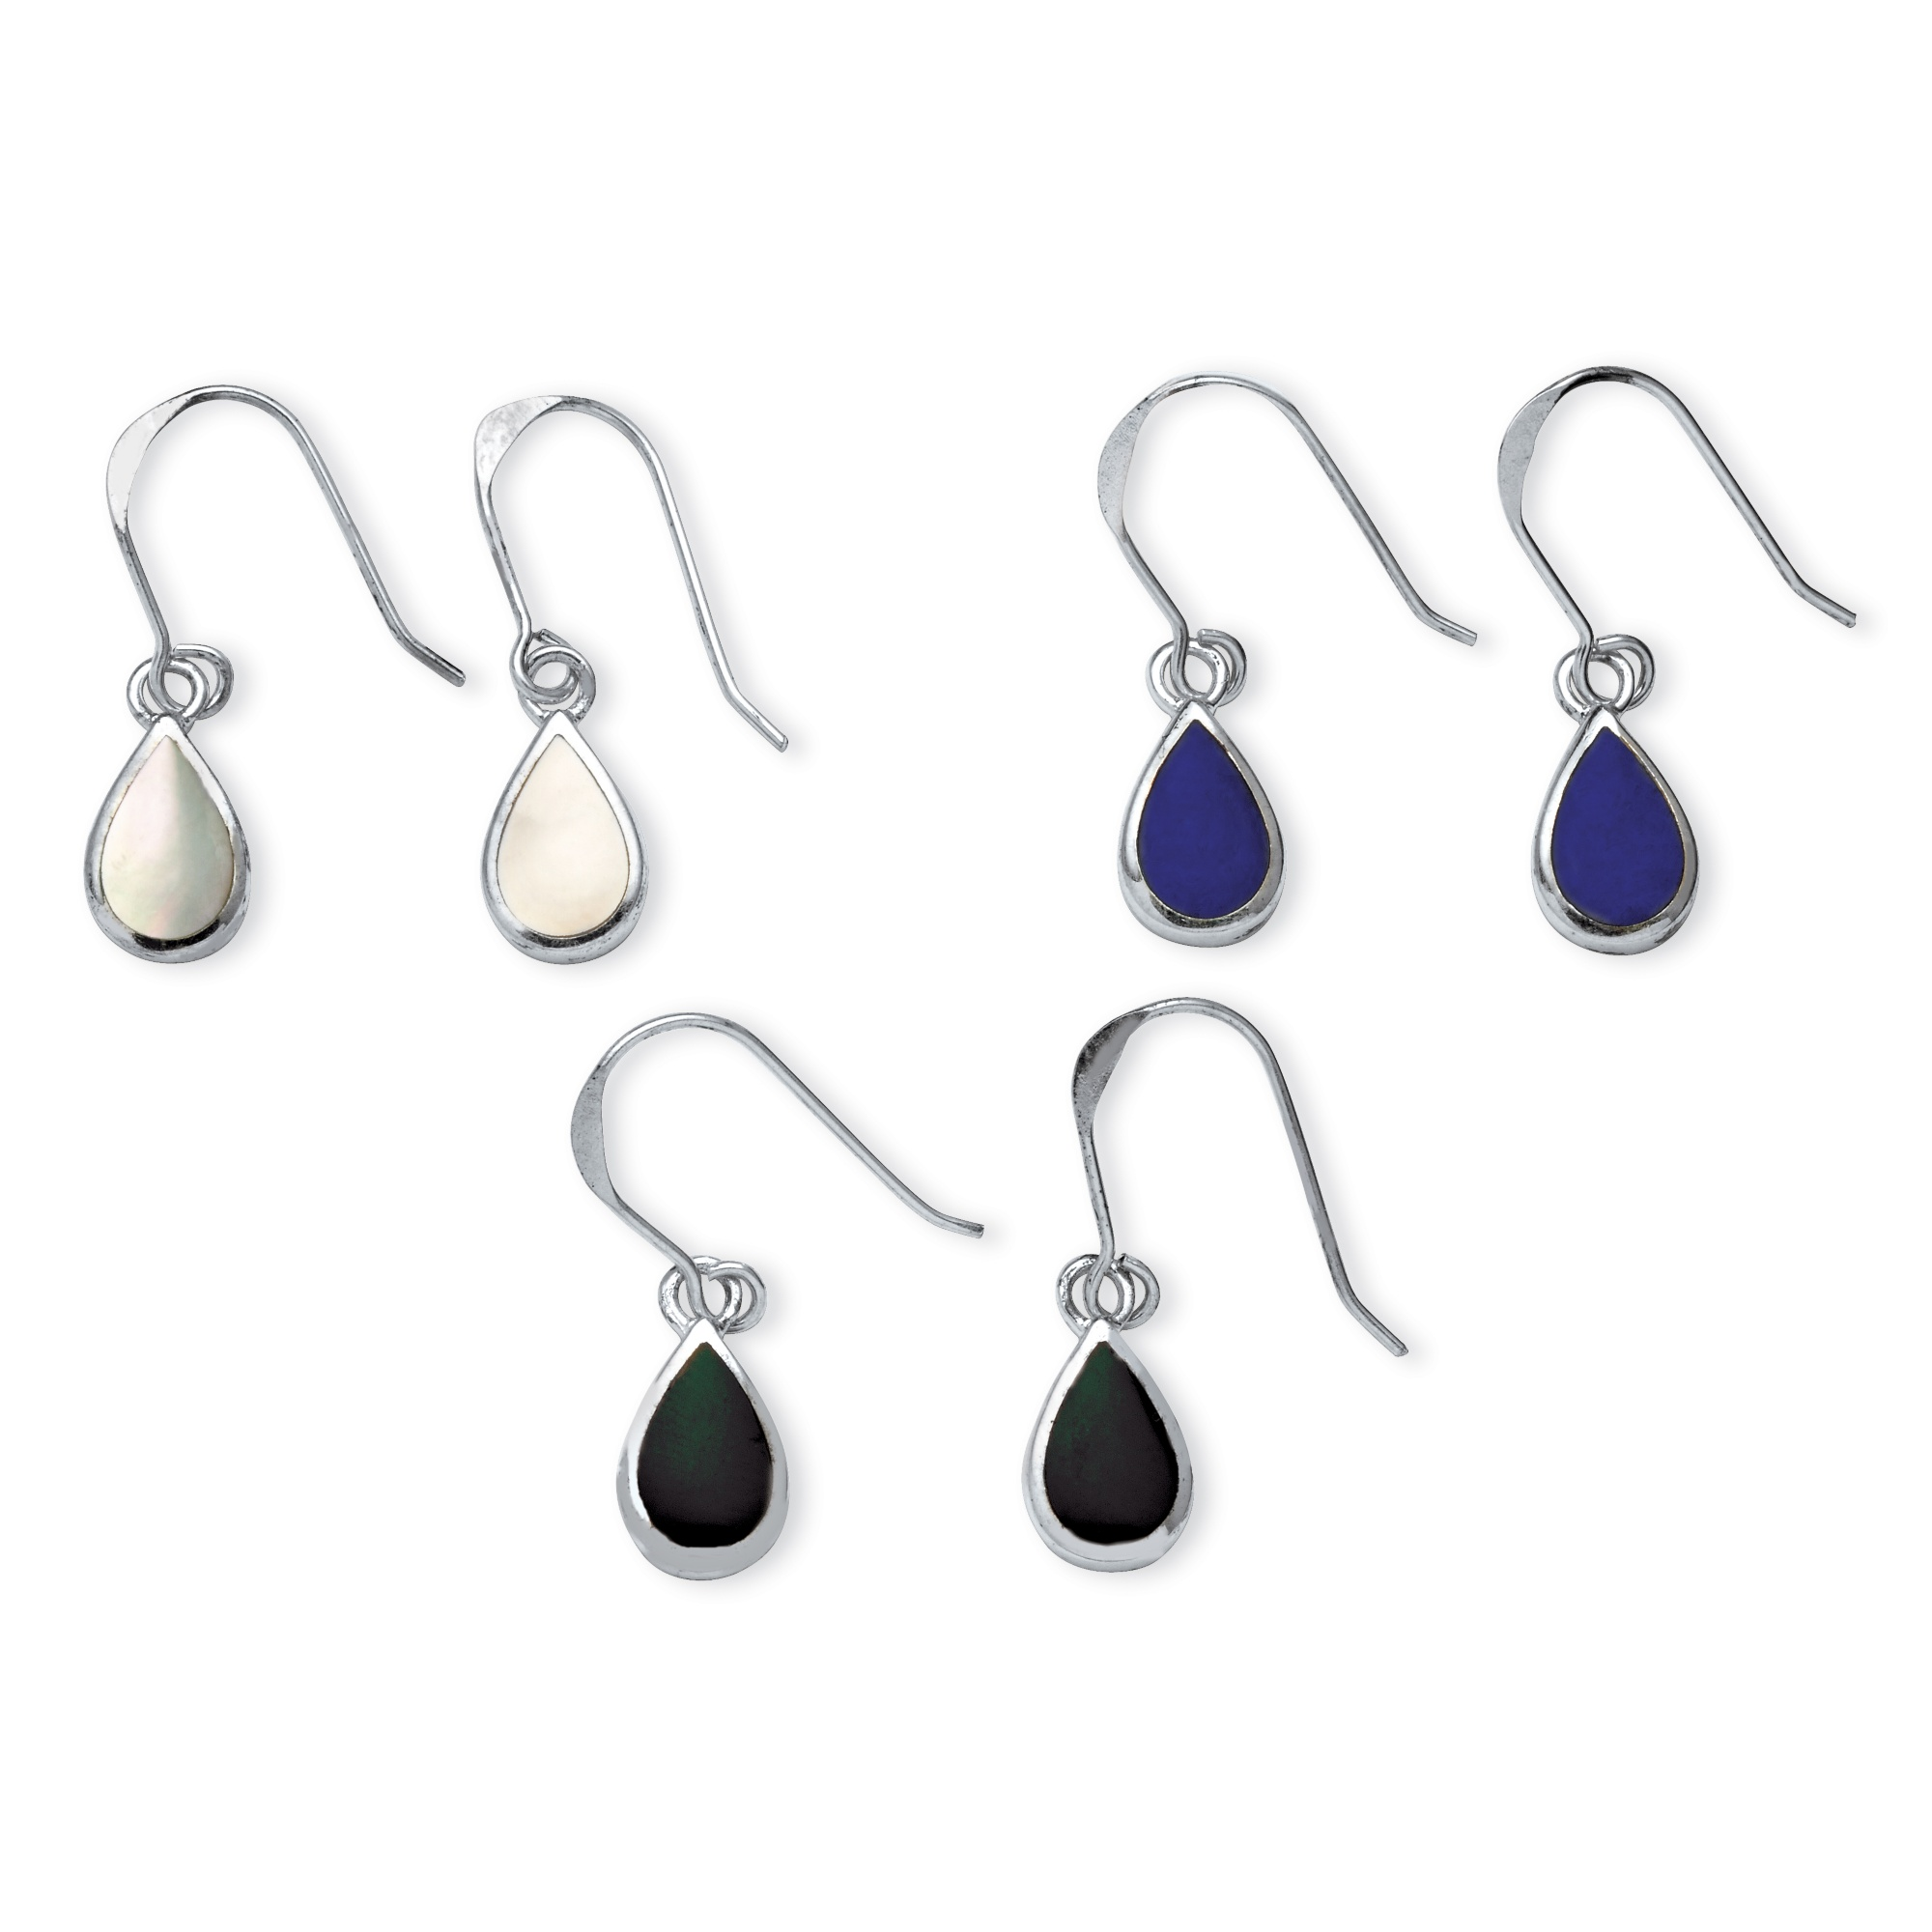 3 Pair Pear-Shaped Mother of Pearl  Onyx and Lapis Drop Earrings Set in Sterling Silver